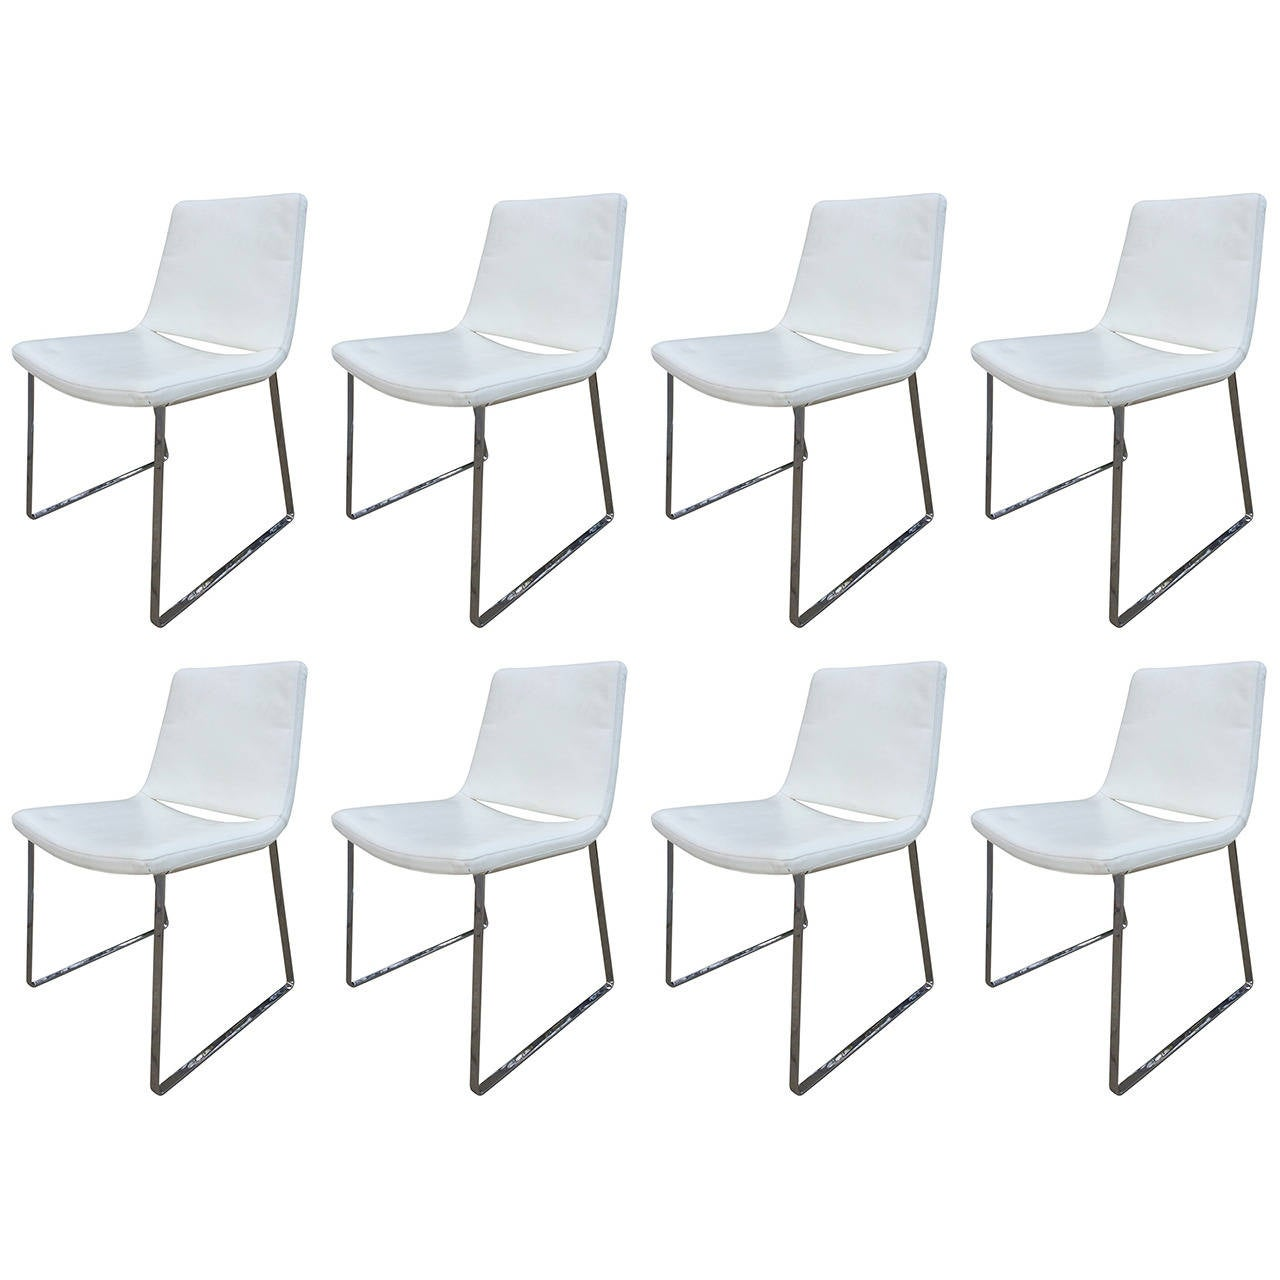 Set of Eight B&B Italia White Leather Chairs by Jeffrey Bernett For Sale